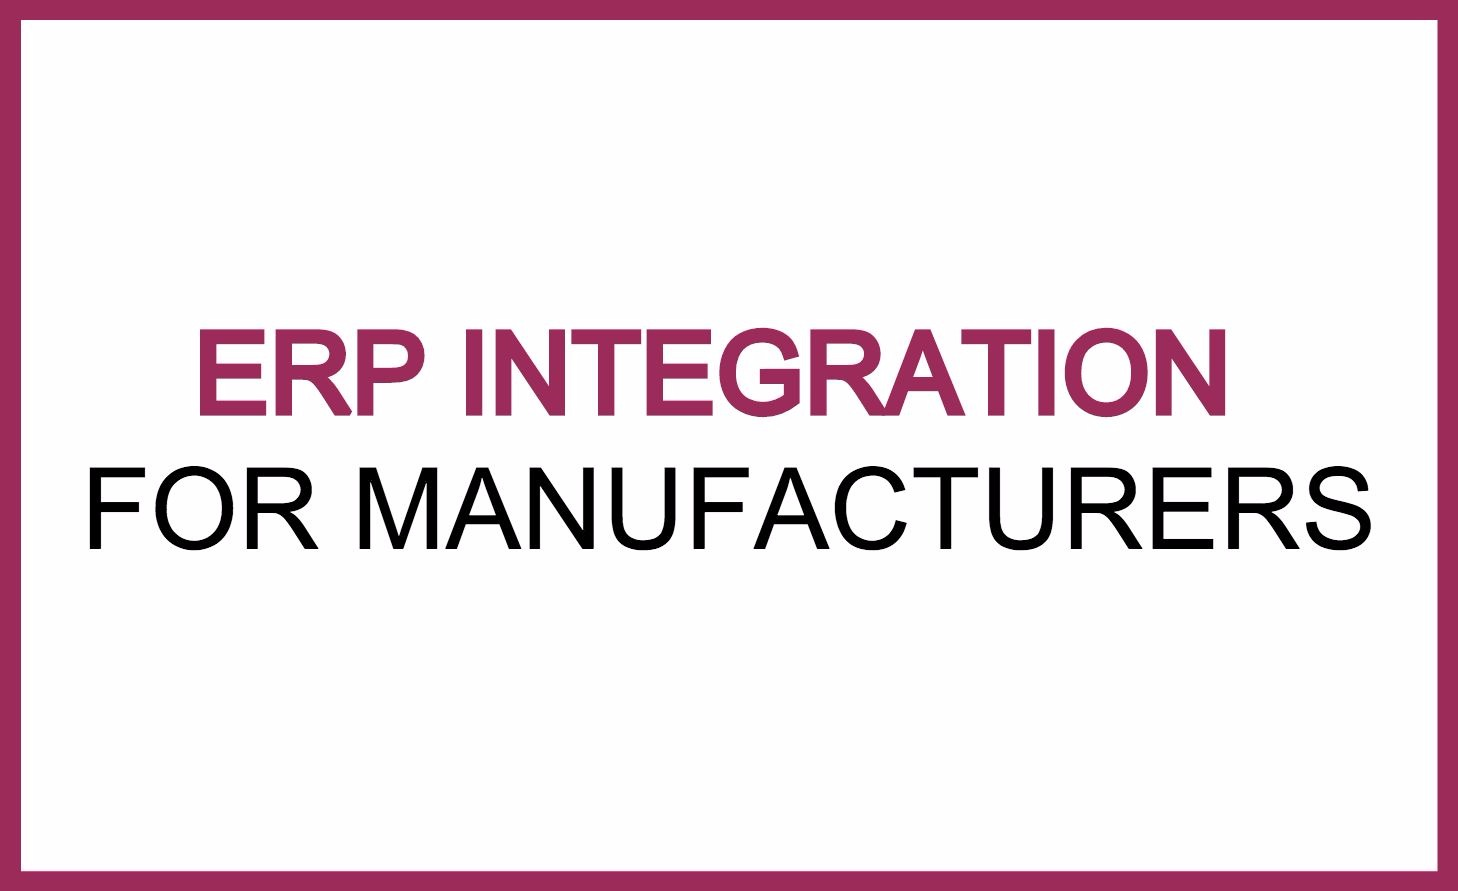 erp integration manufacturers.jpg